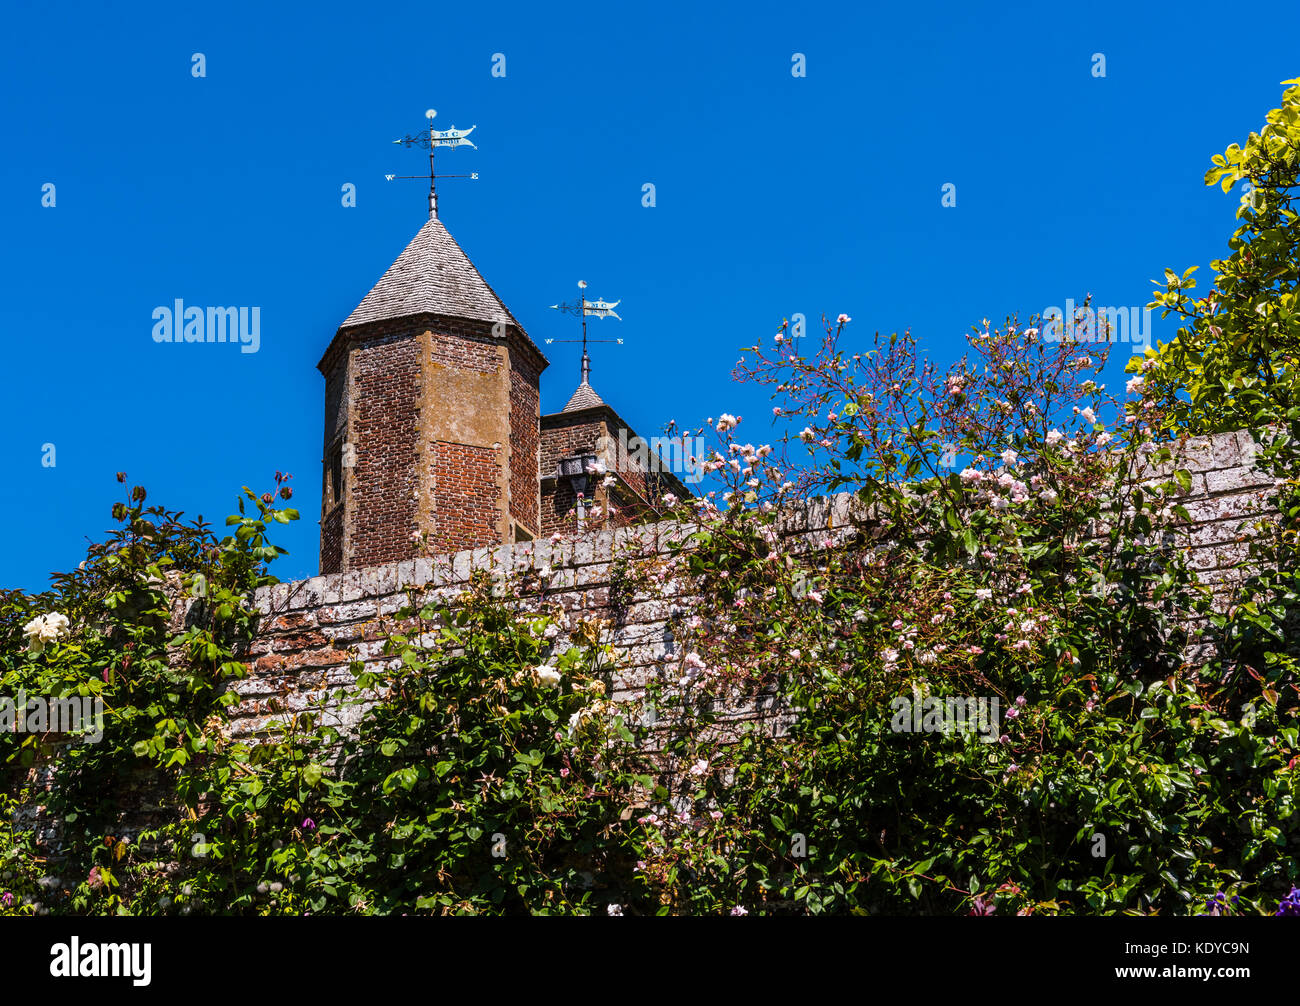 Castle tower and rose wall at Sissinghurst Gardens, Kent, UK - Stock Image